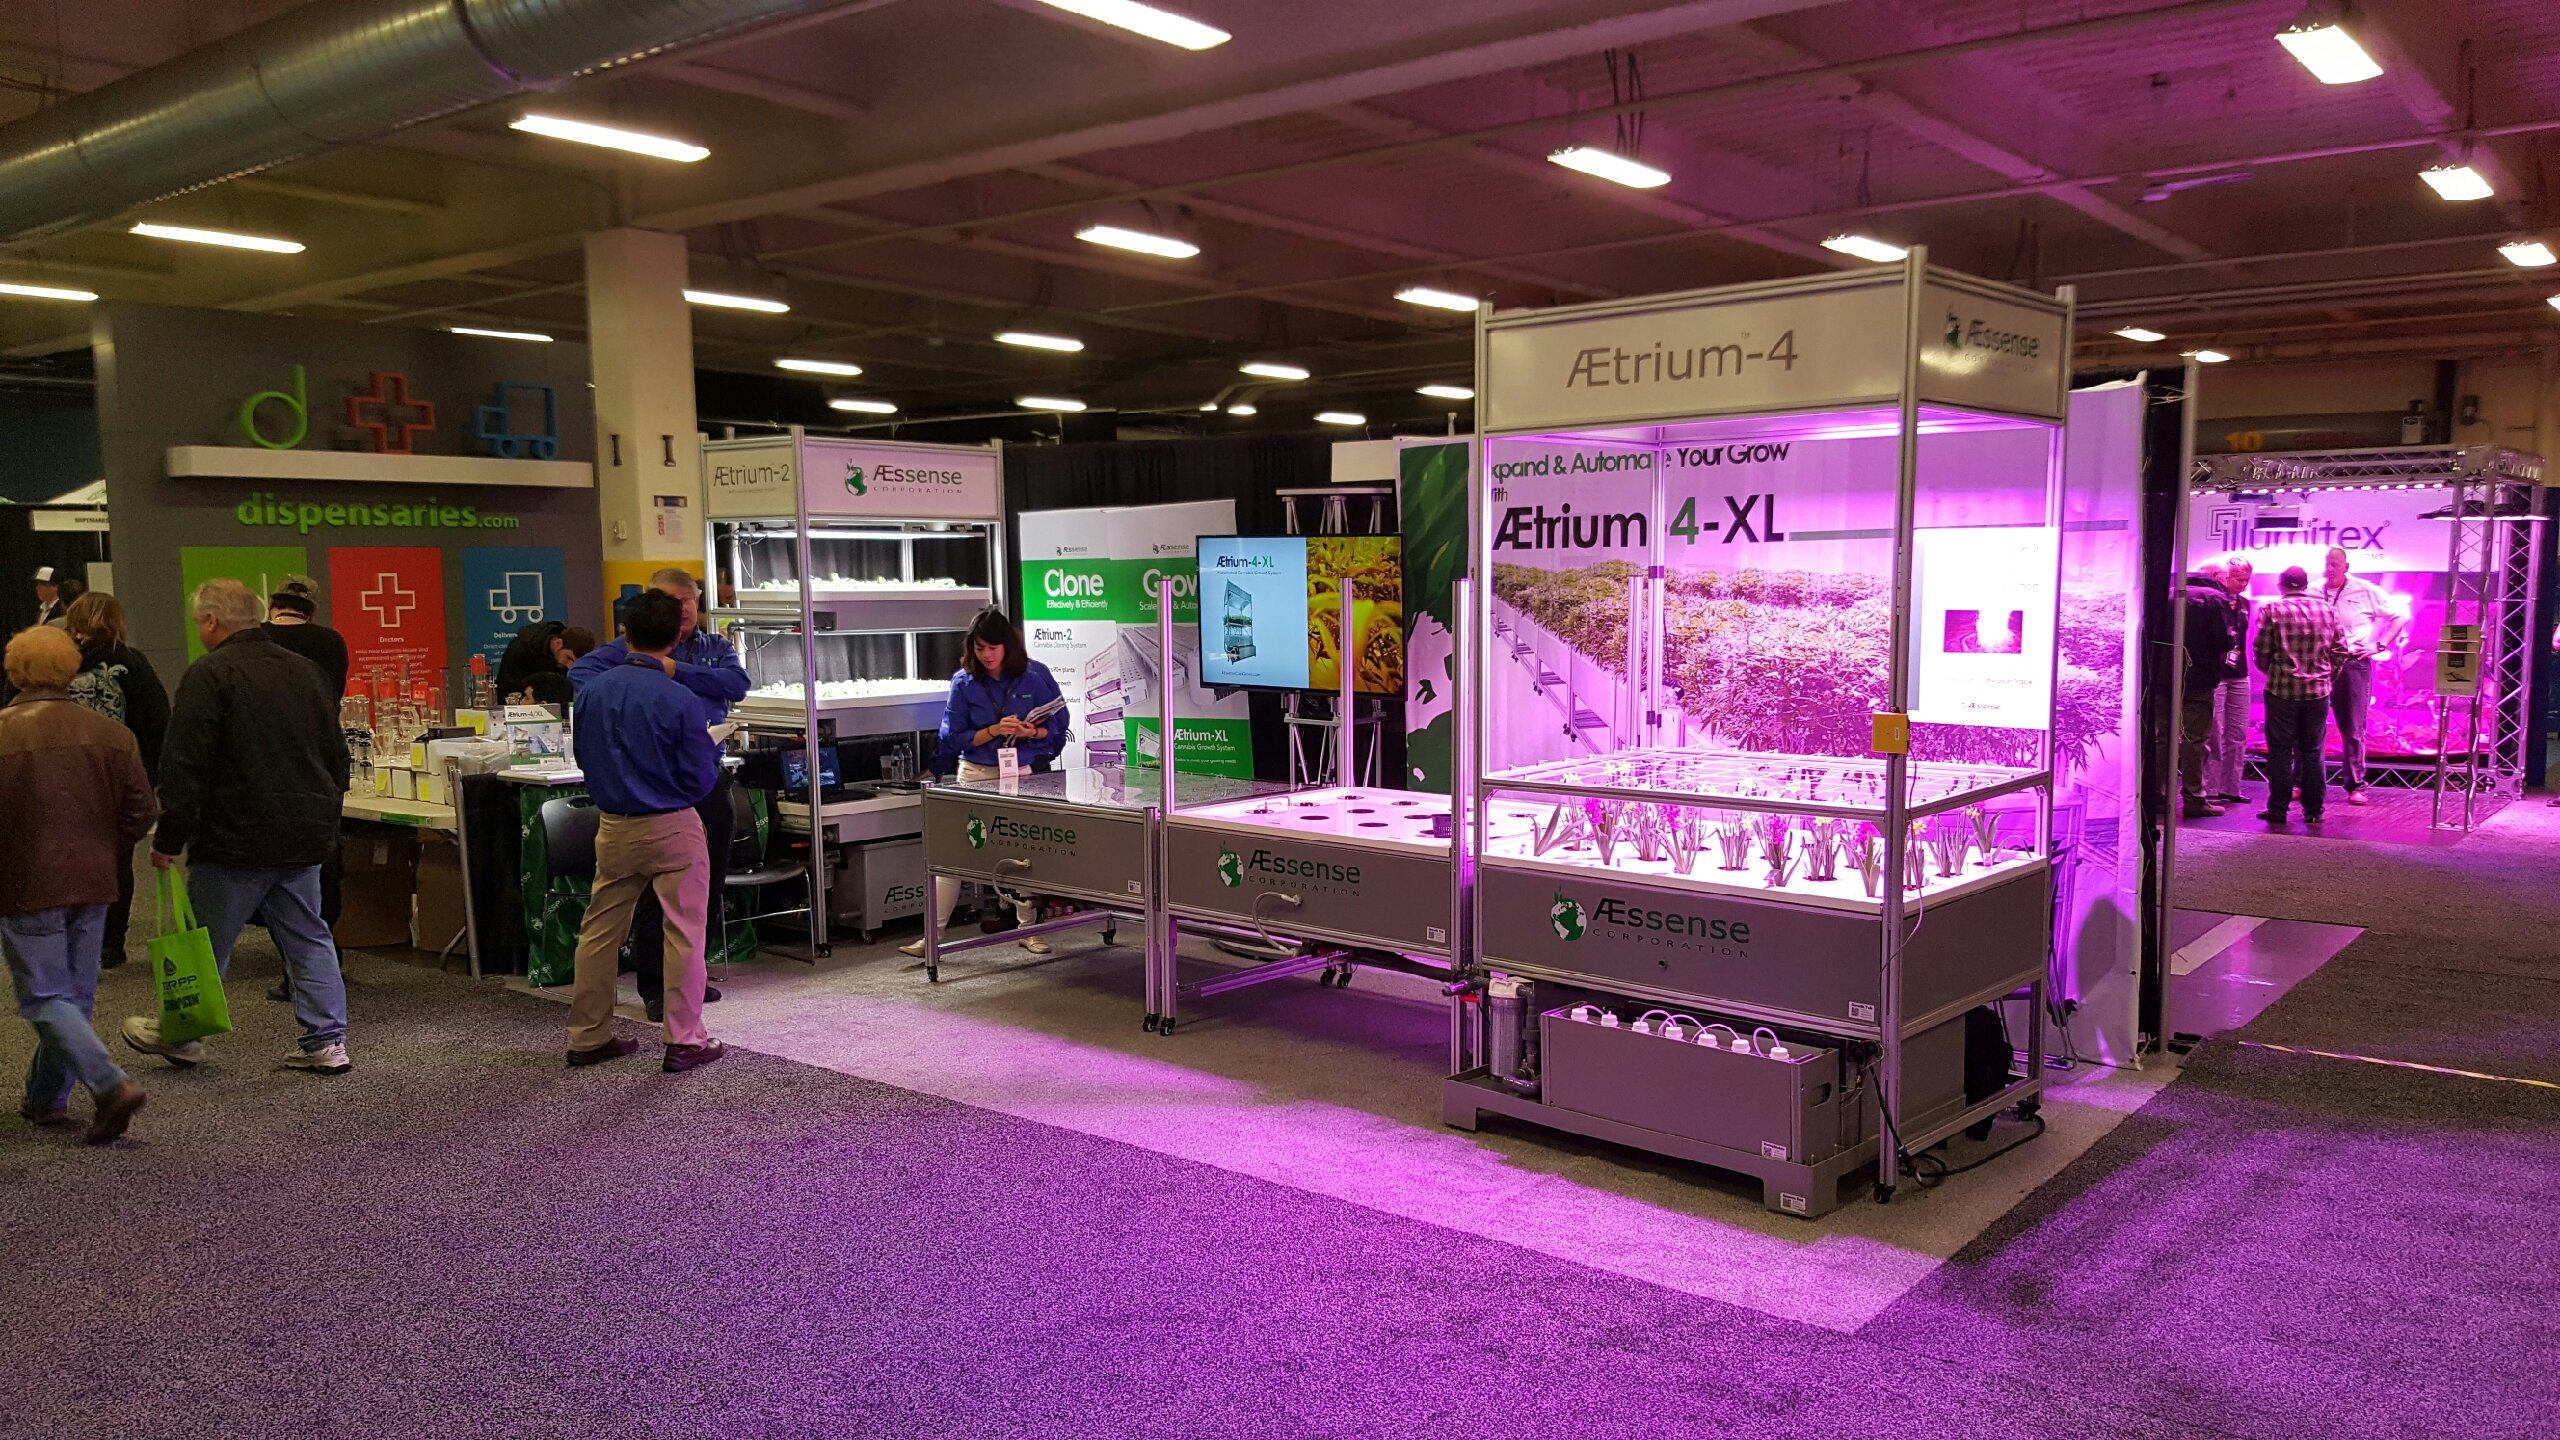 AEssense Exhibits at CannaCon 2016 in Seattle